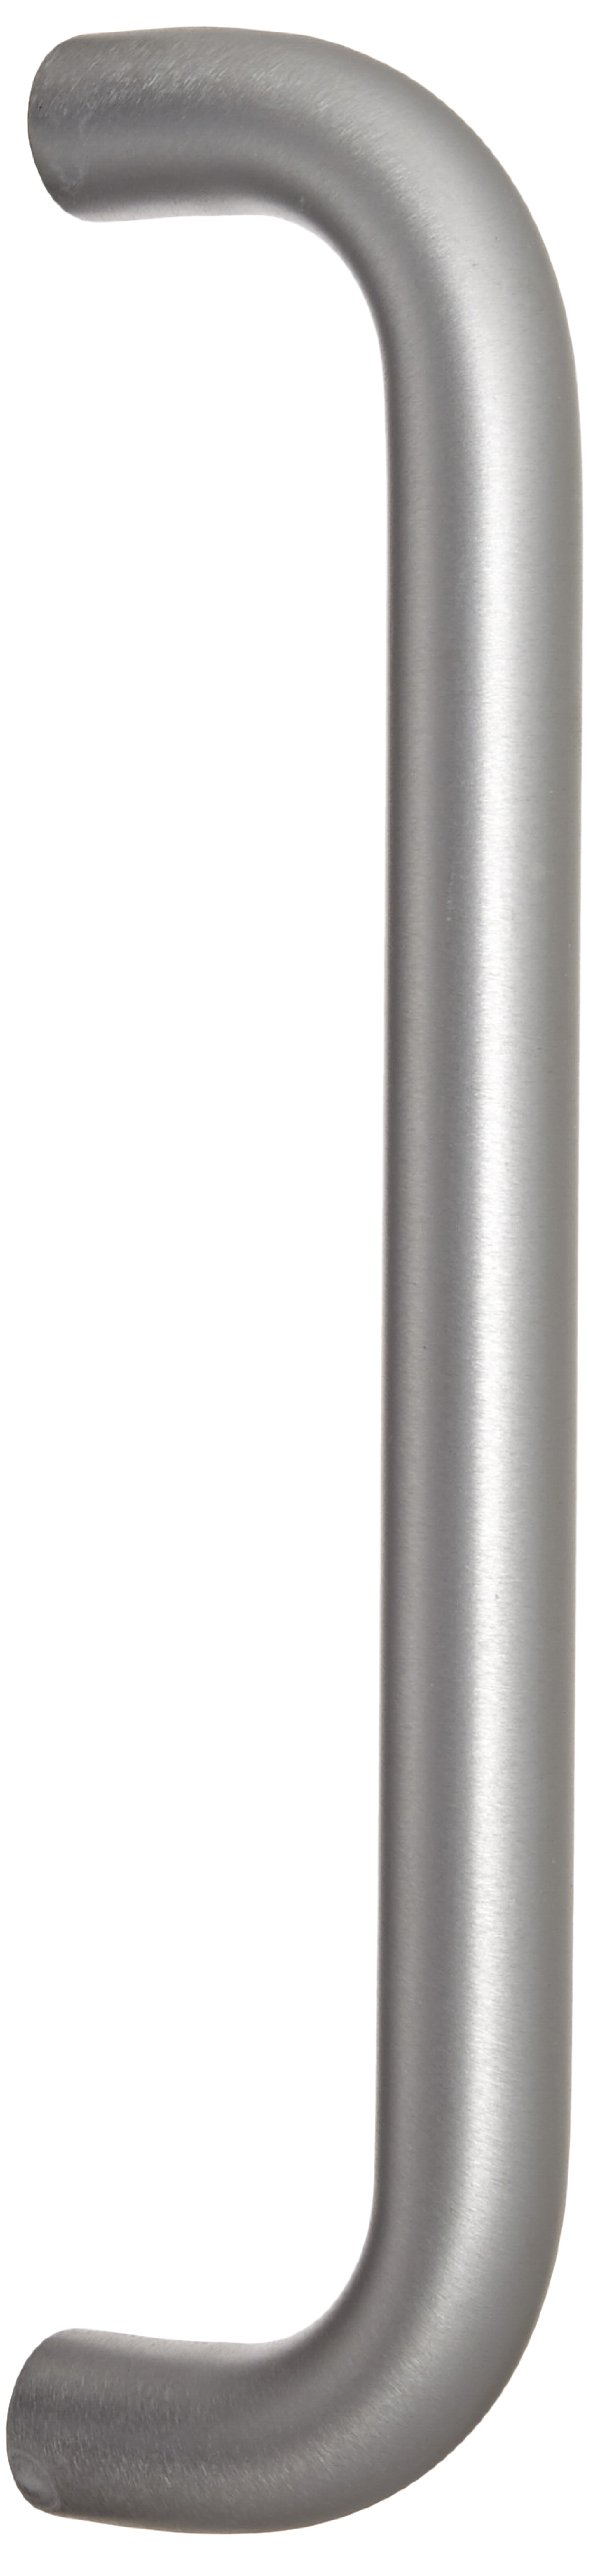 Rockwood 112.28 Aluminum Straight Solid Door Pull for 1-3/4'' Door, 1'' Diameter x 12'' Center-to-Center, Type 1 Through-Bolt Mount, Clear Anodized Finish